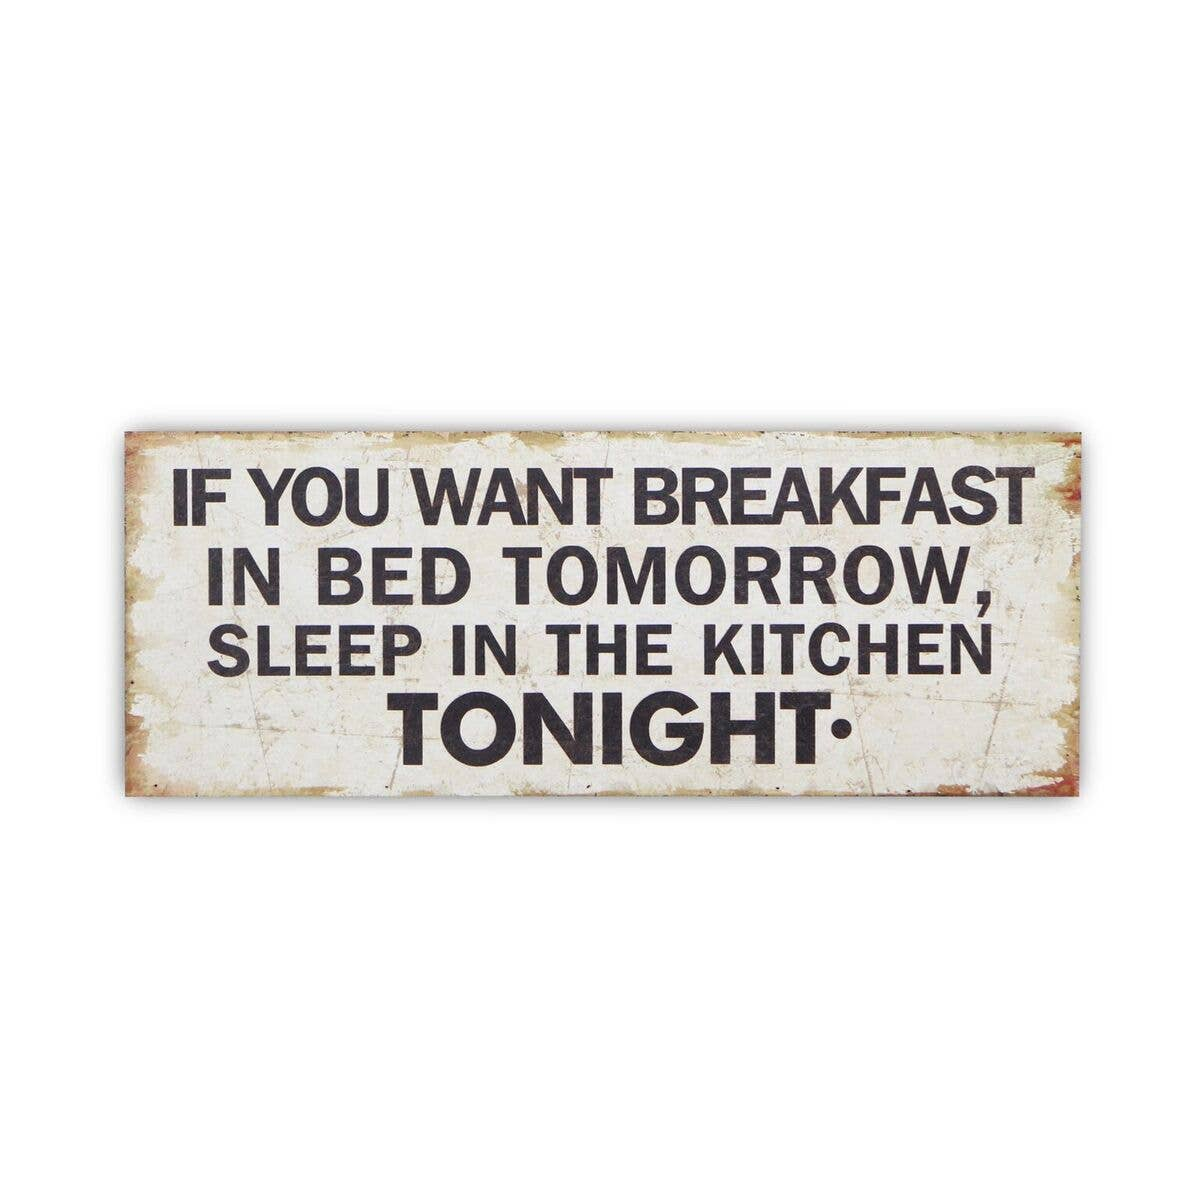 """If You Want Breakfast In Bed"" - Wooden Wall Decor"